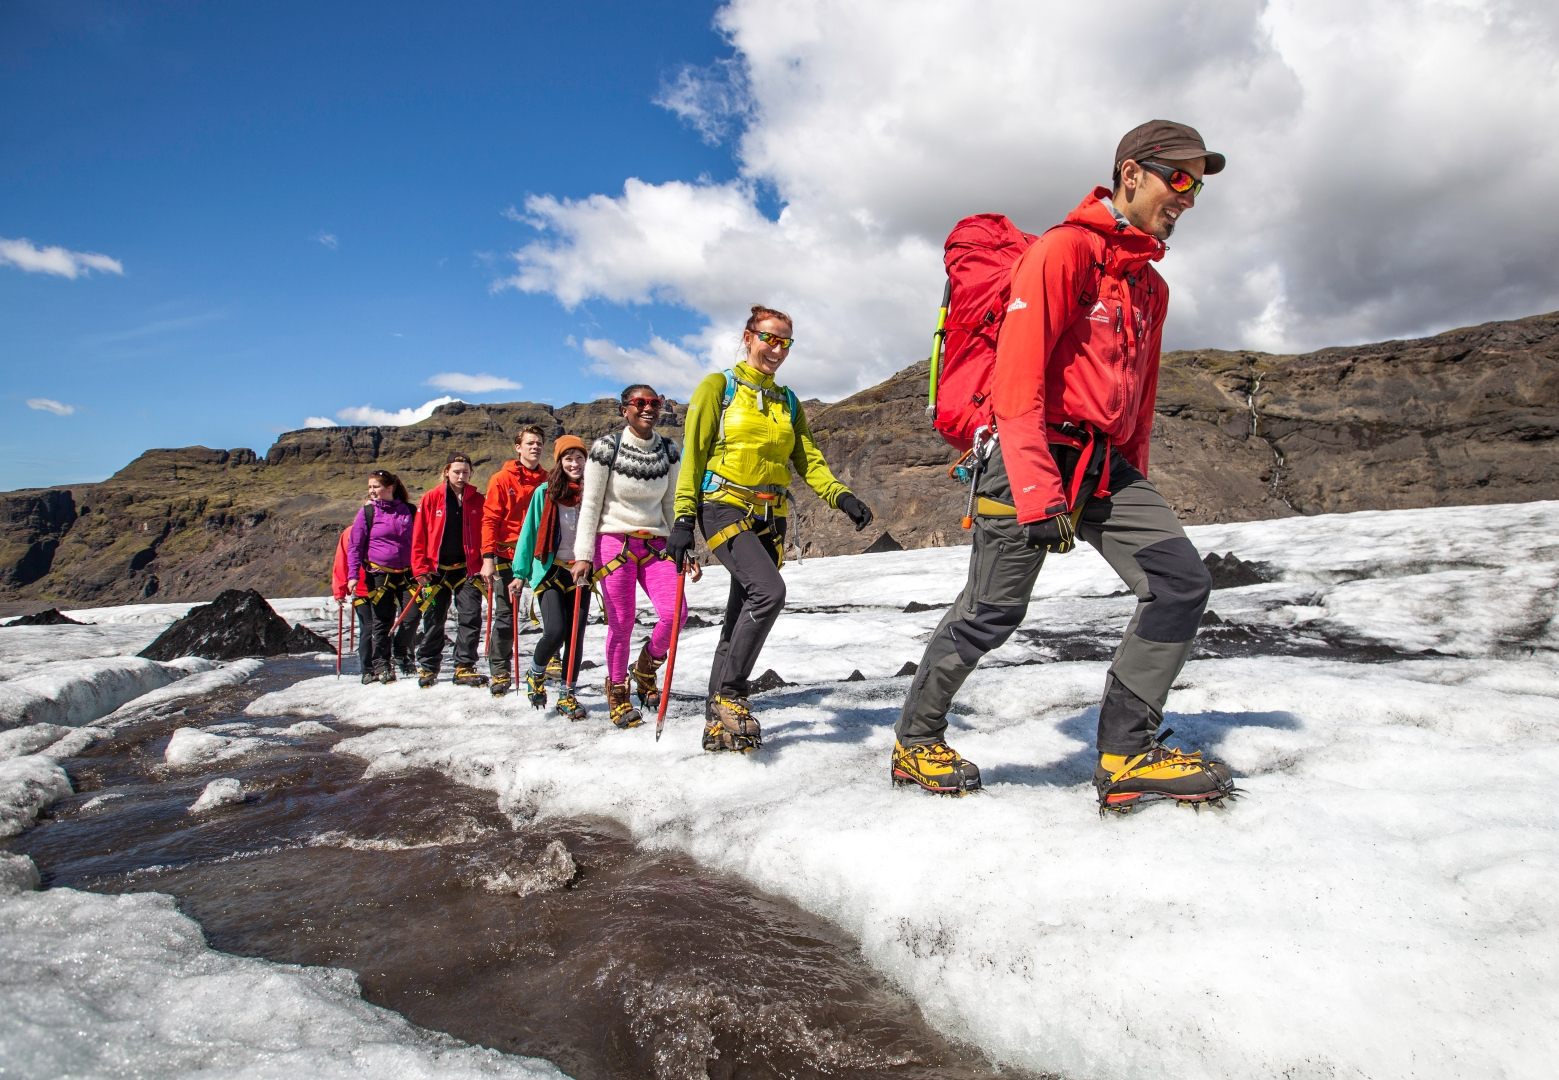 Heading higher up on the glacier